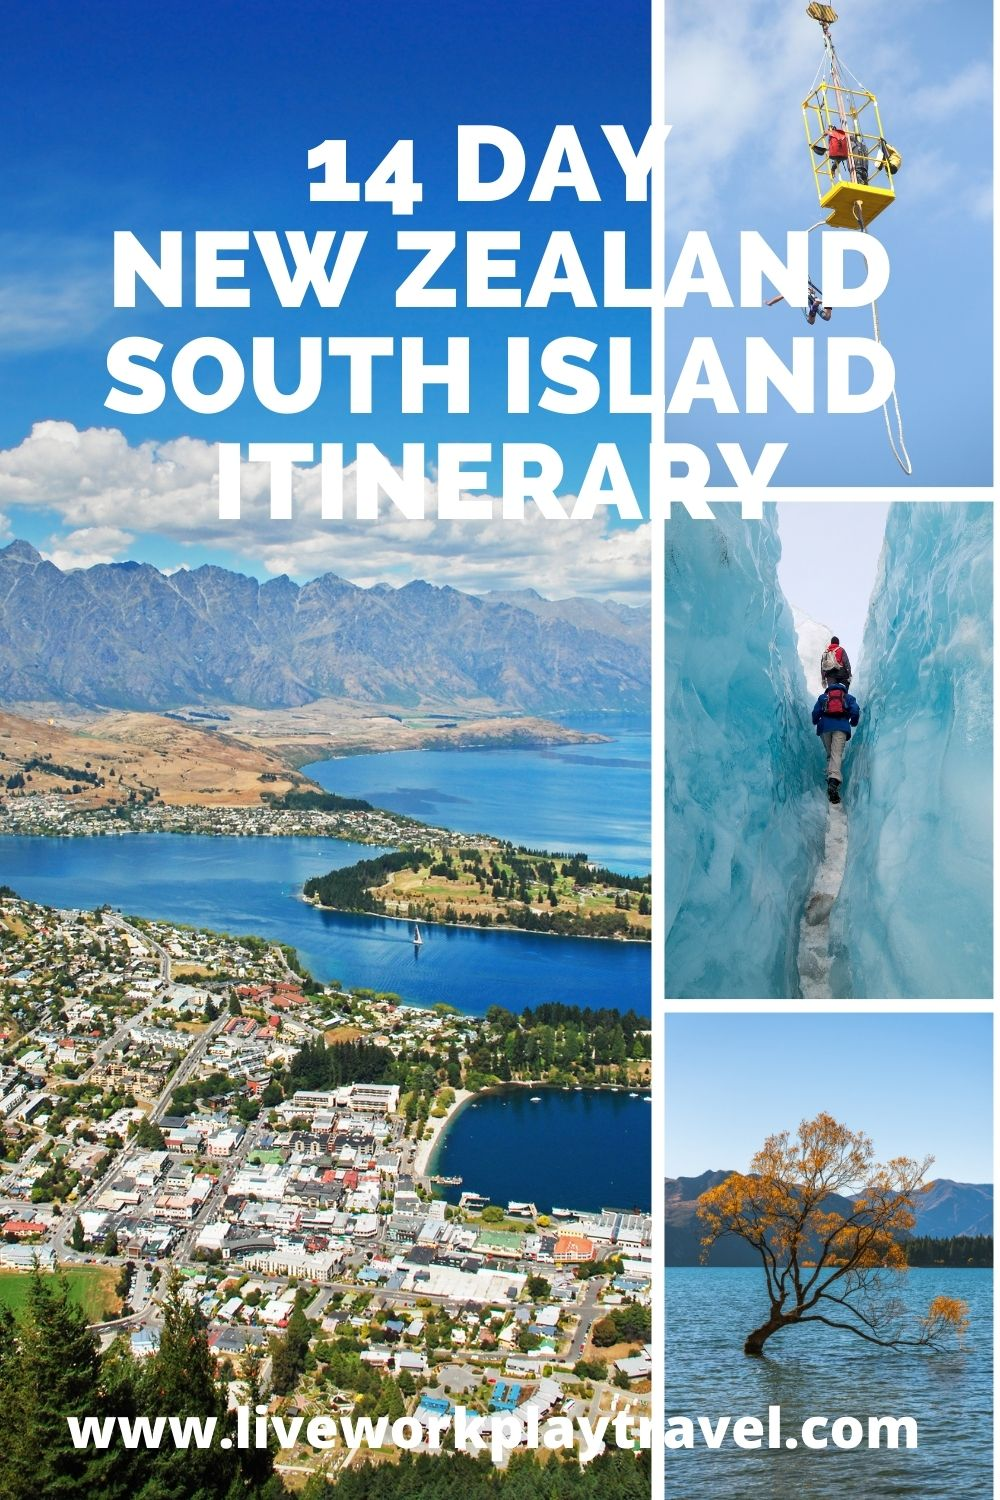 New Zealand's South Island Has Beautiful Bodies Of Water Called Sounds And Apart From All The Beautiful Things To See Like Glaciers It Is Also The Adrenalin Capital Of The World.  Why Not Bungee Jump Or Sky Dive.